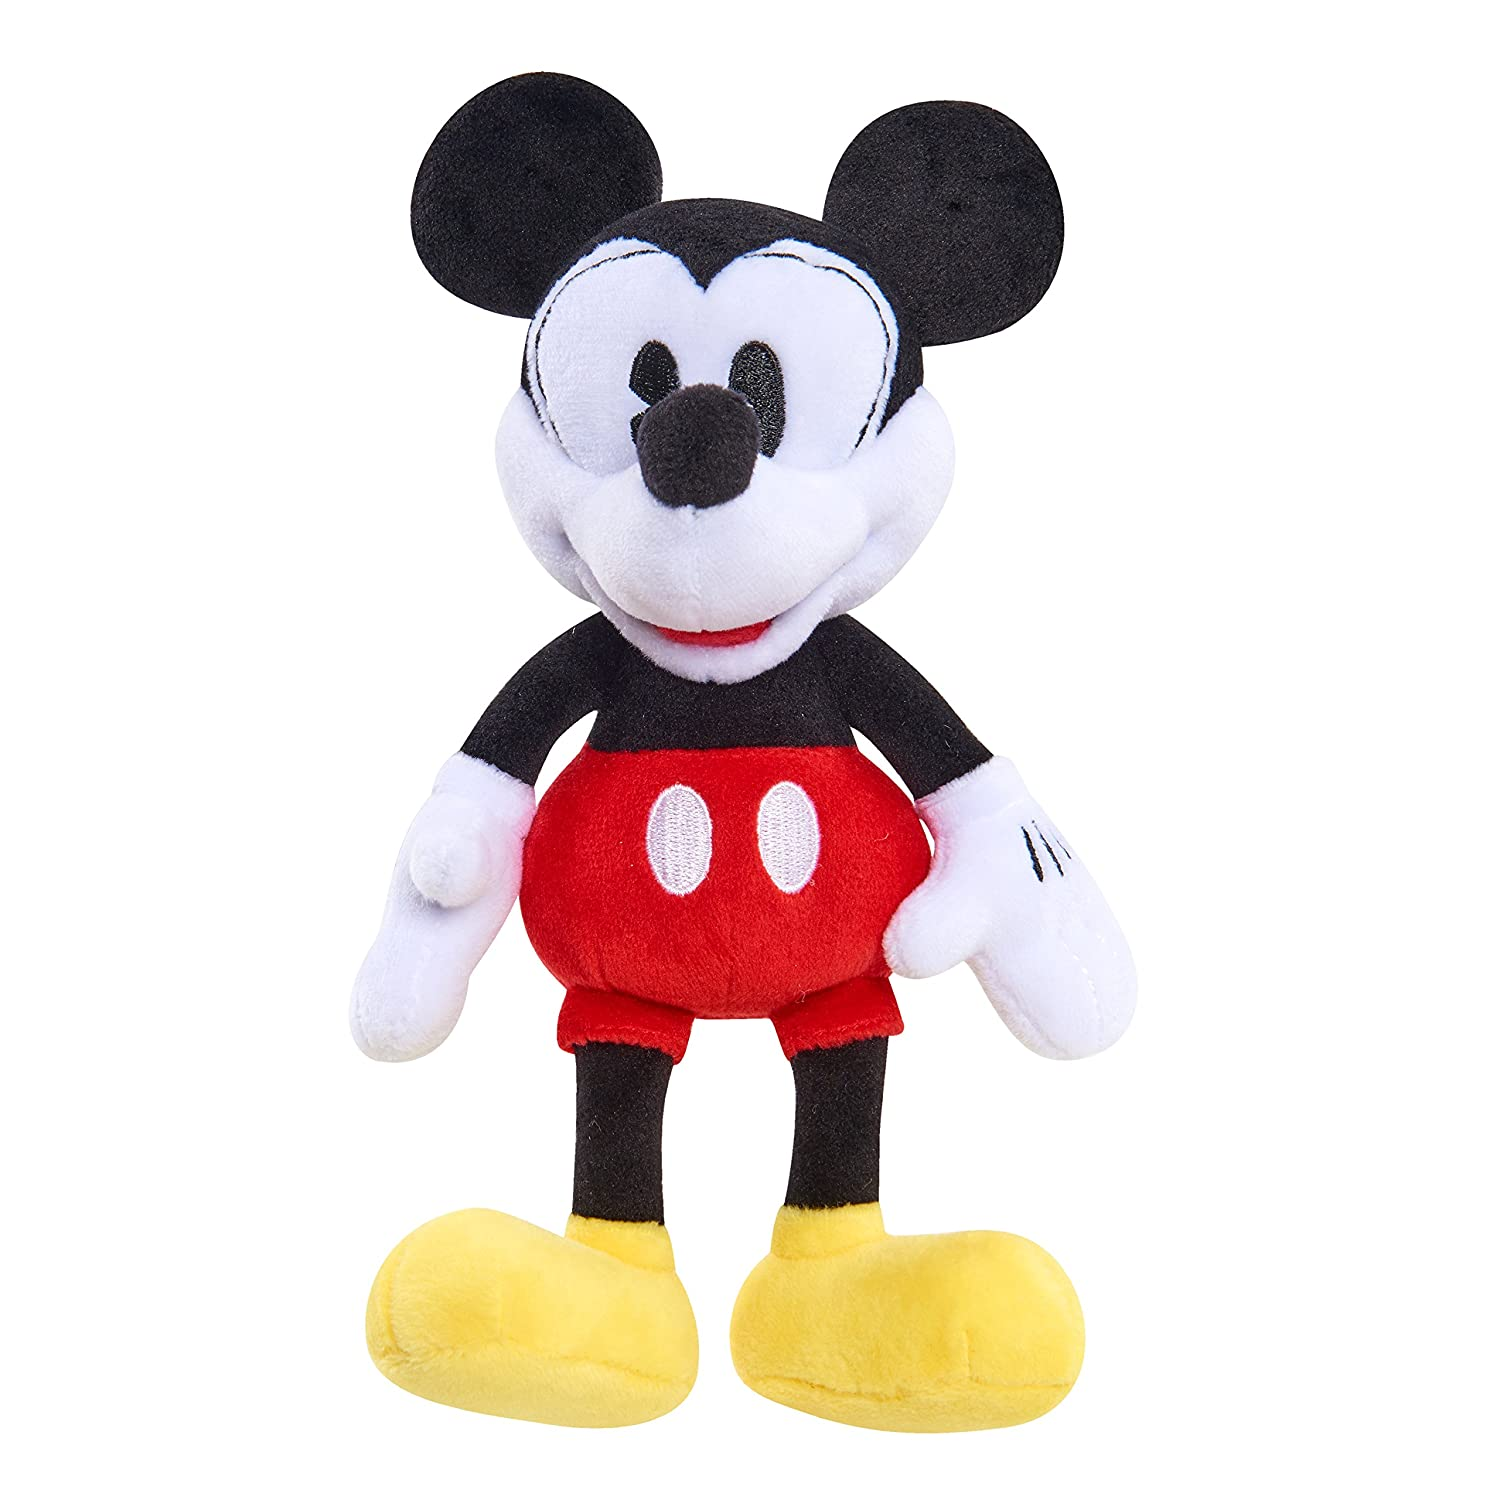 Mickey 90th Disney Beans Plush 8' - Sorcerer Just Play 12275